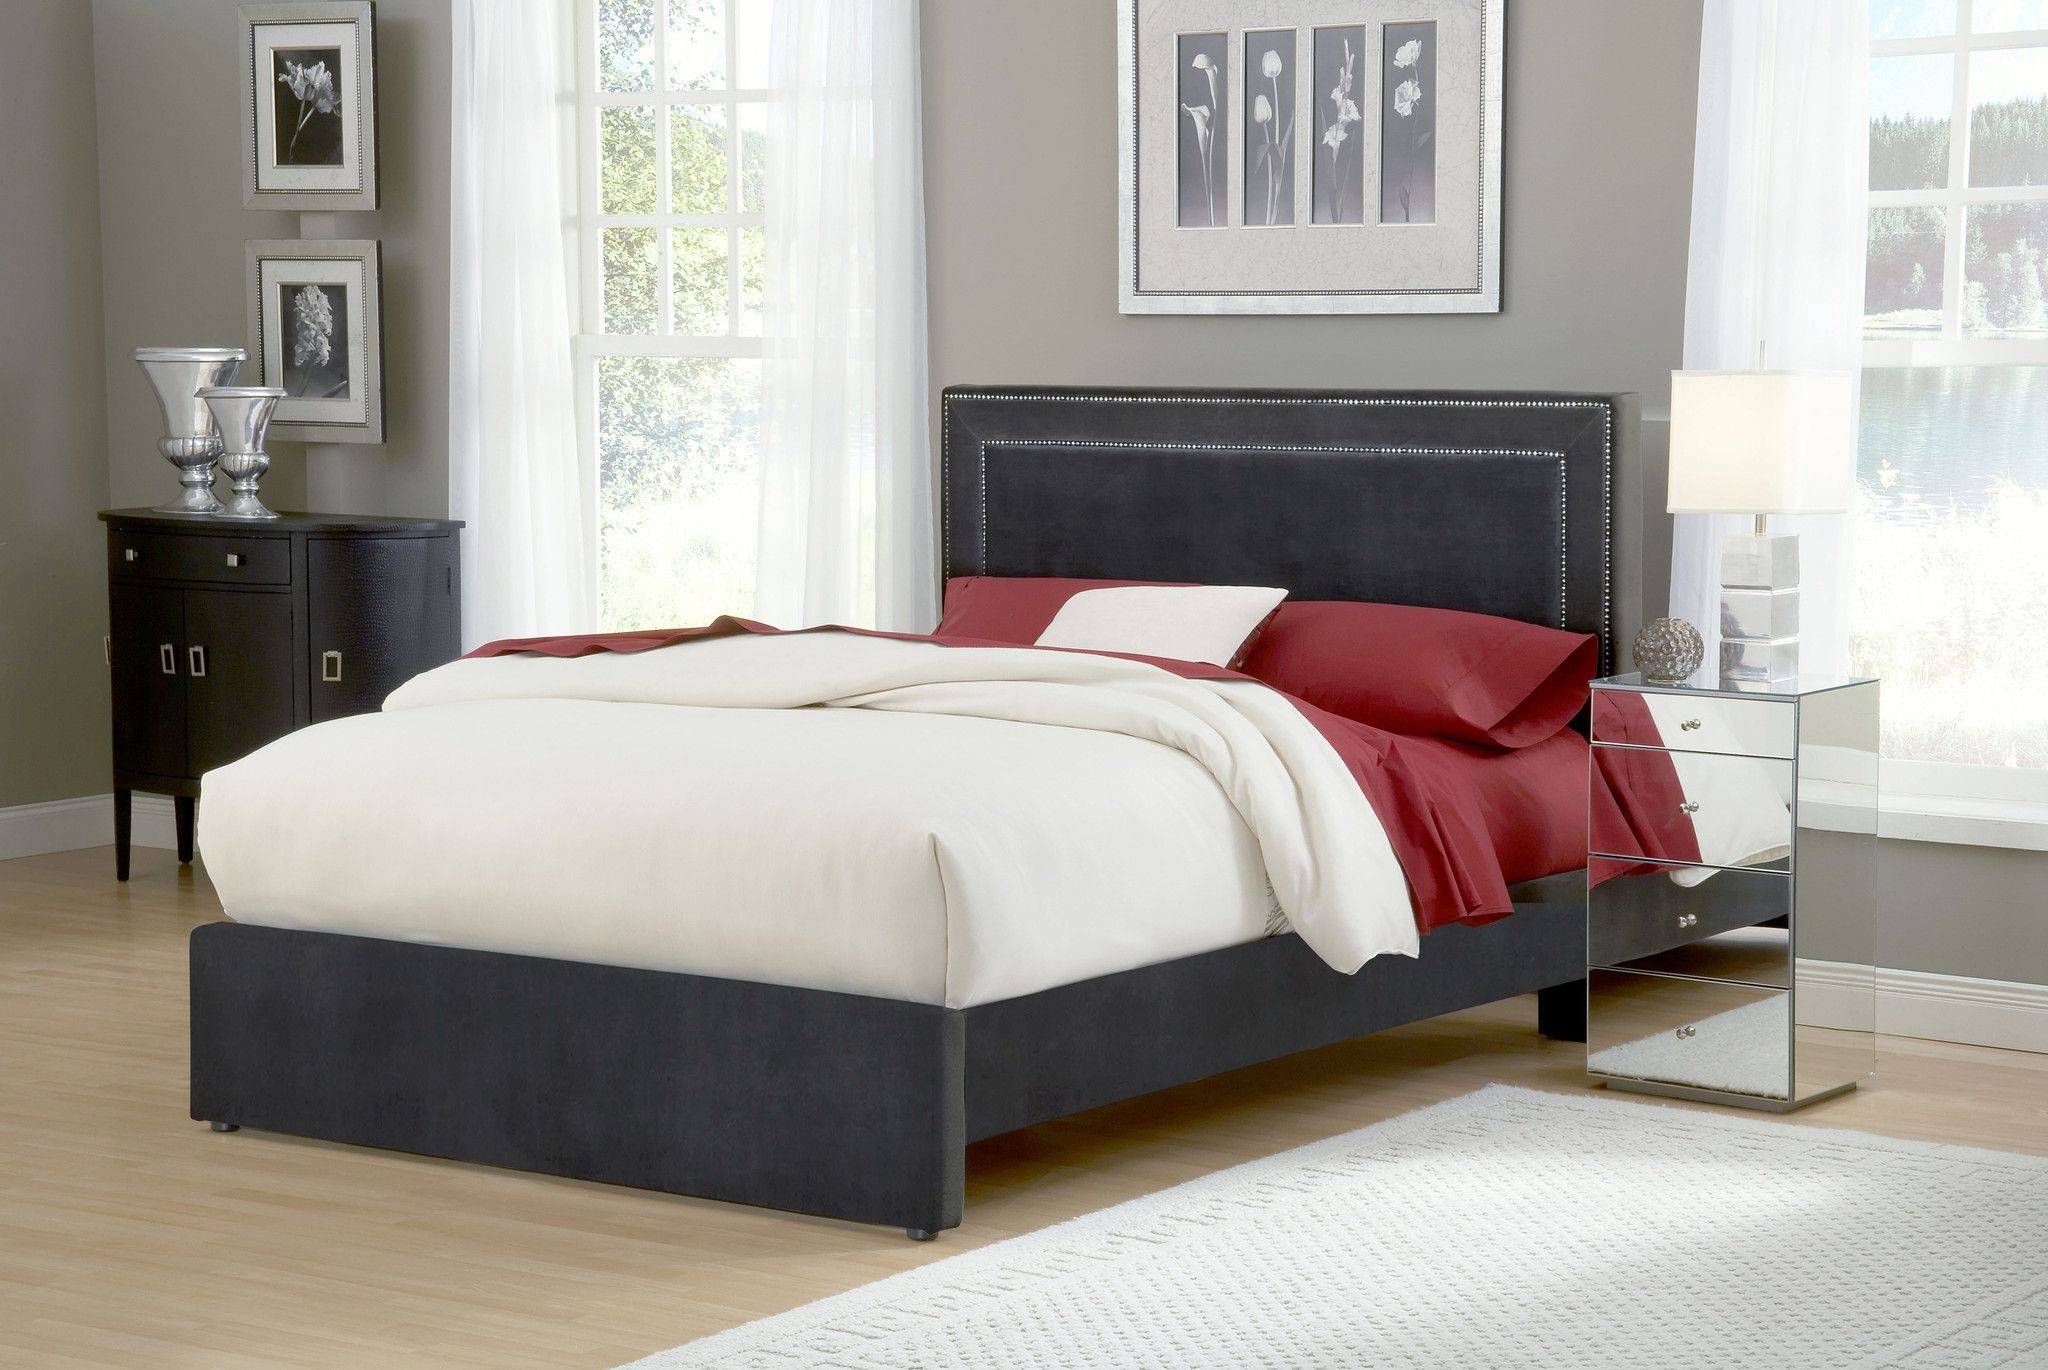 Hillsdale Amber King Bed Set Hillsdale furniture, Fabric